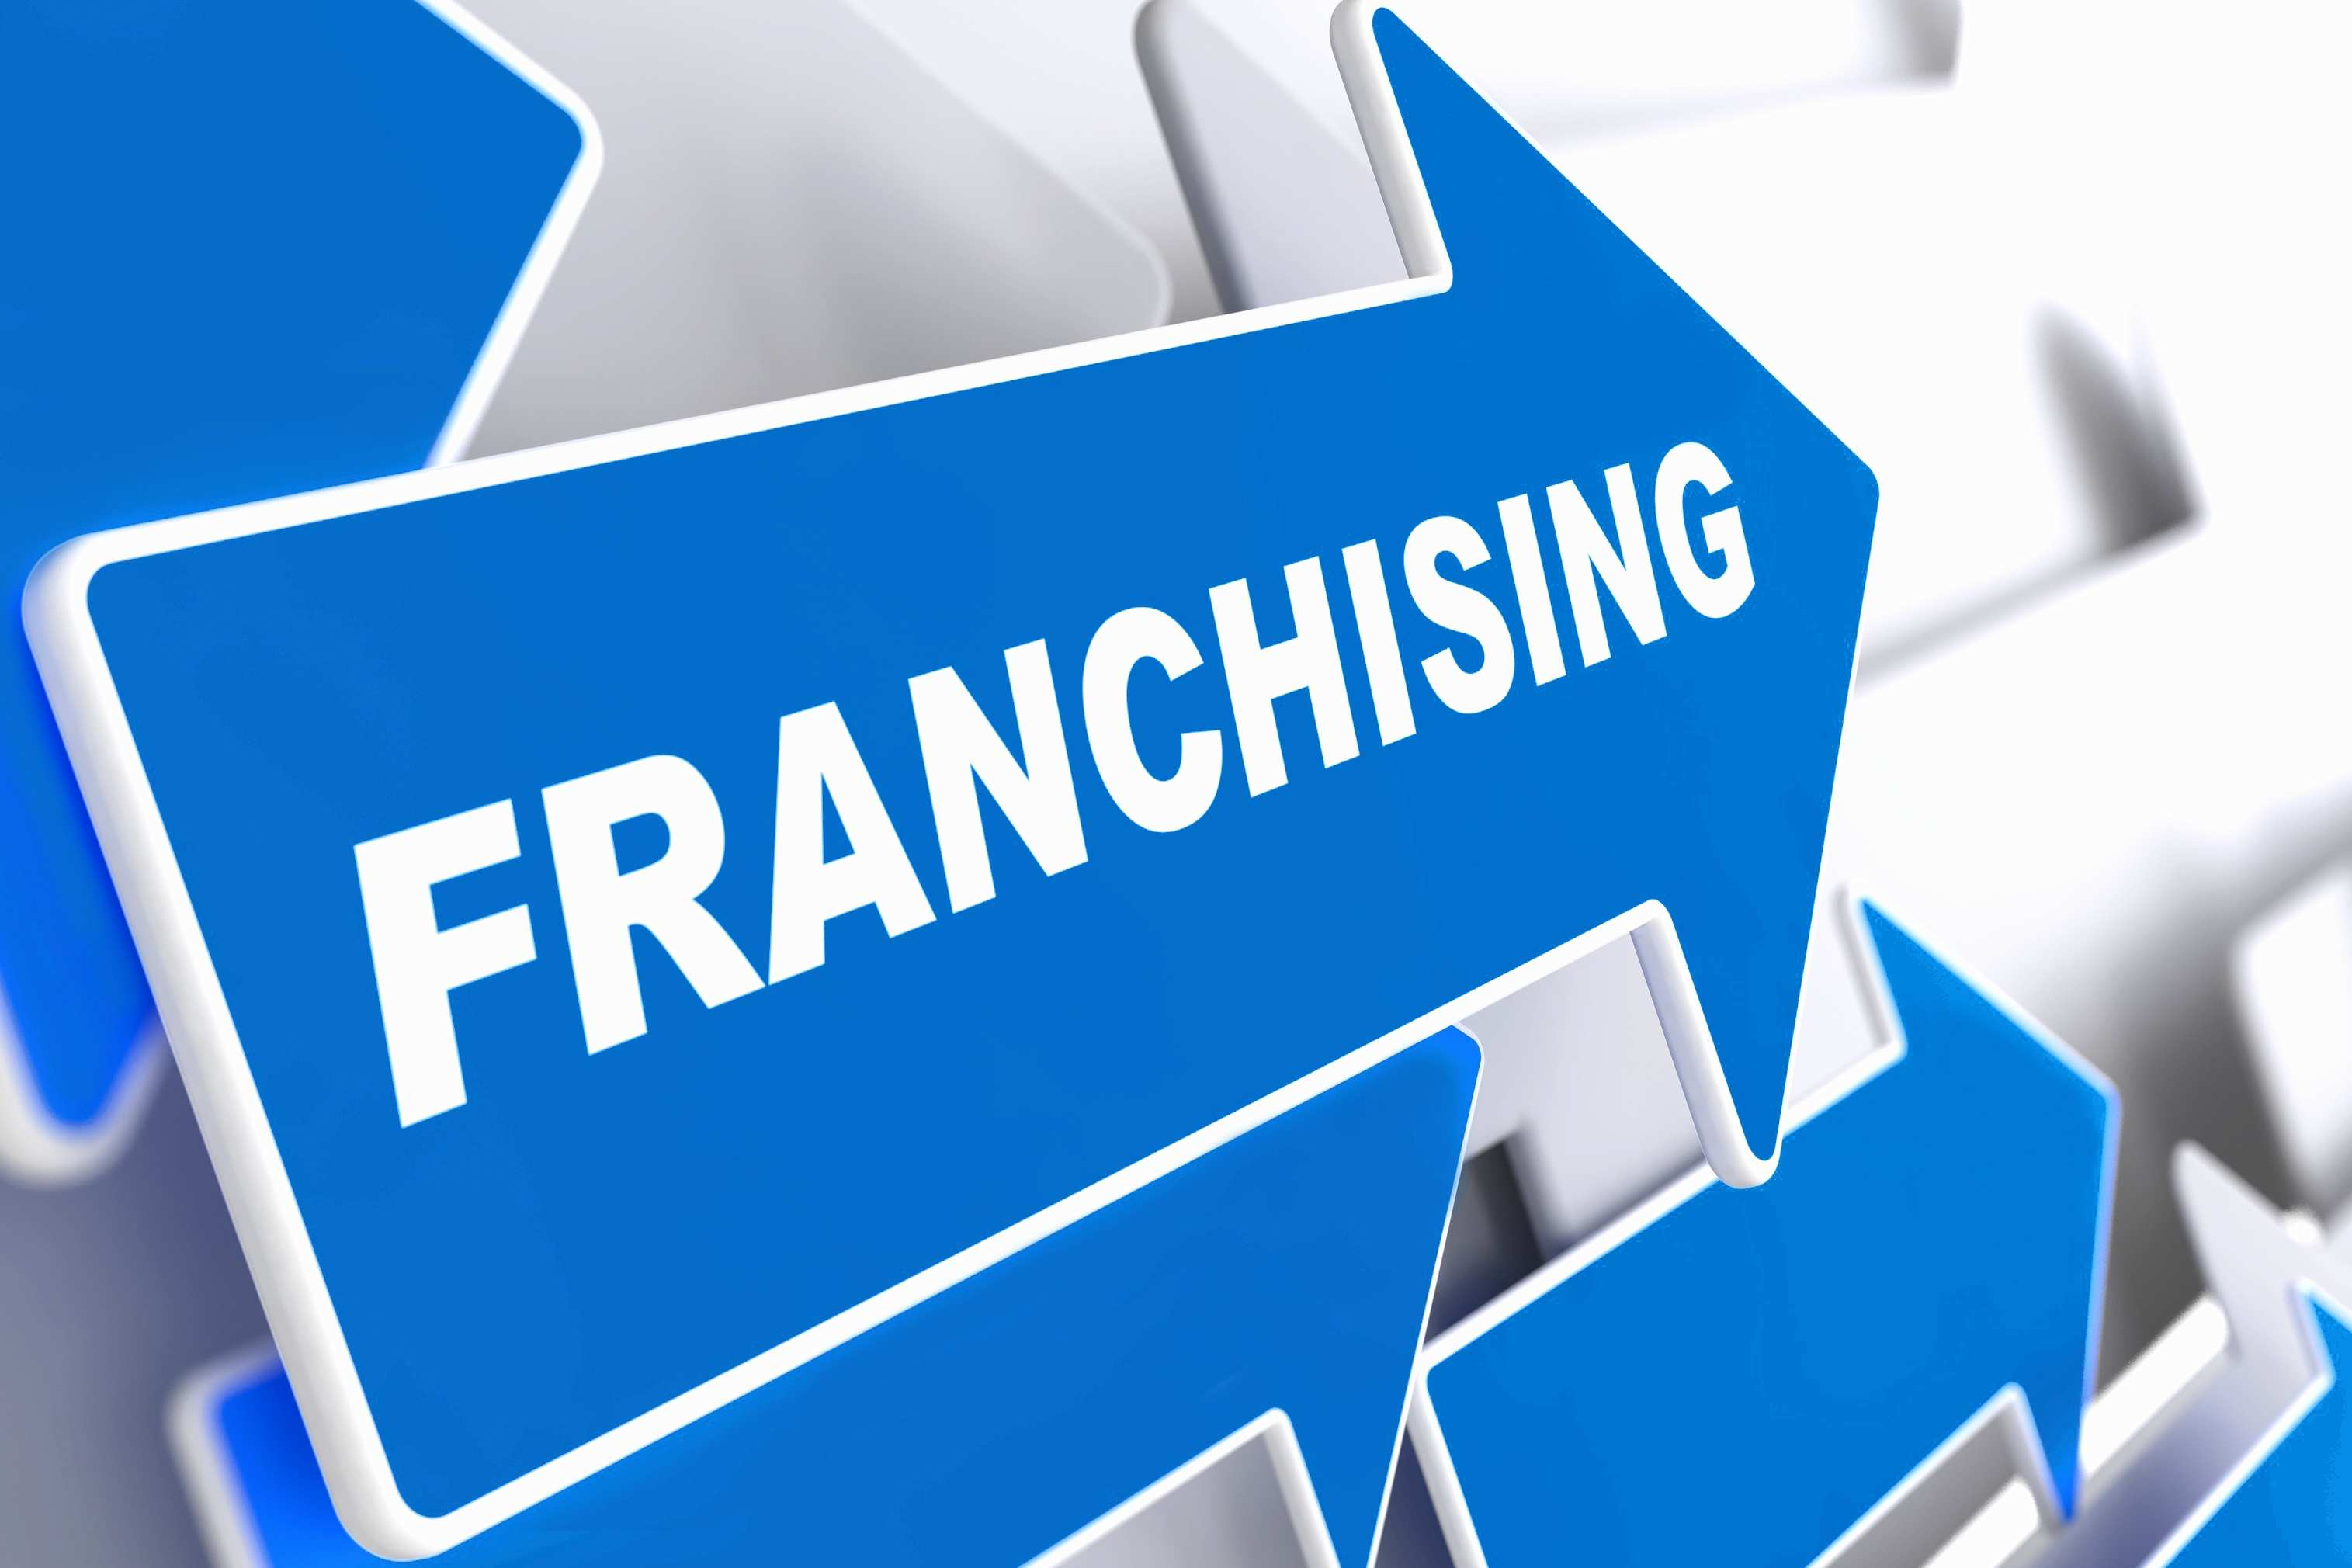 Franchise Agreement Definition whosefoods.org